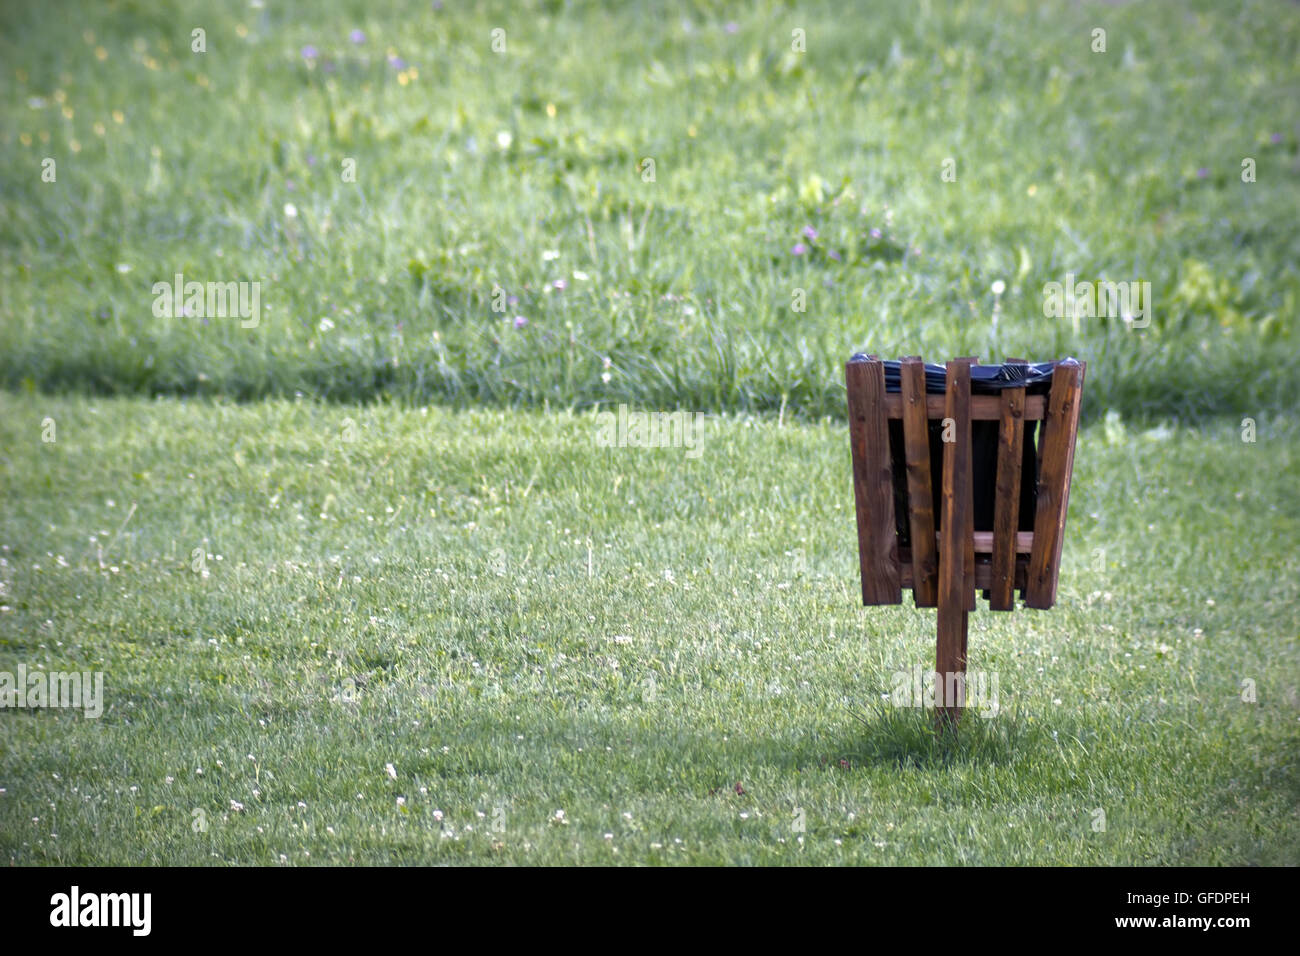 Trash can in a park. Garbage can. Wooden bin. Wooden garbage basket in park. - Stock Image